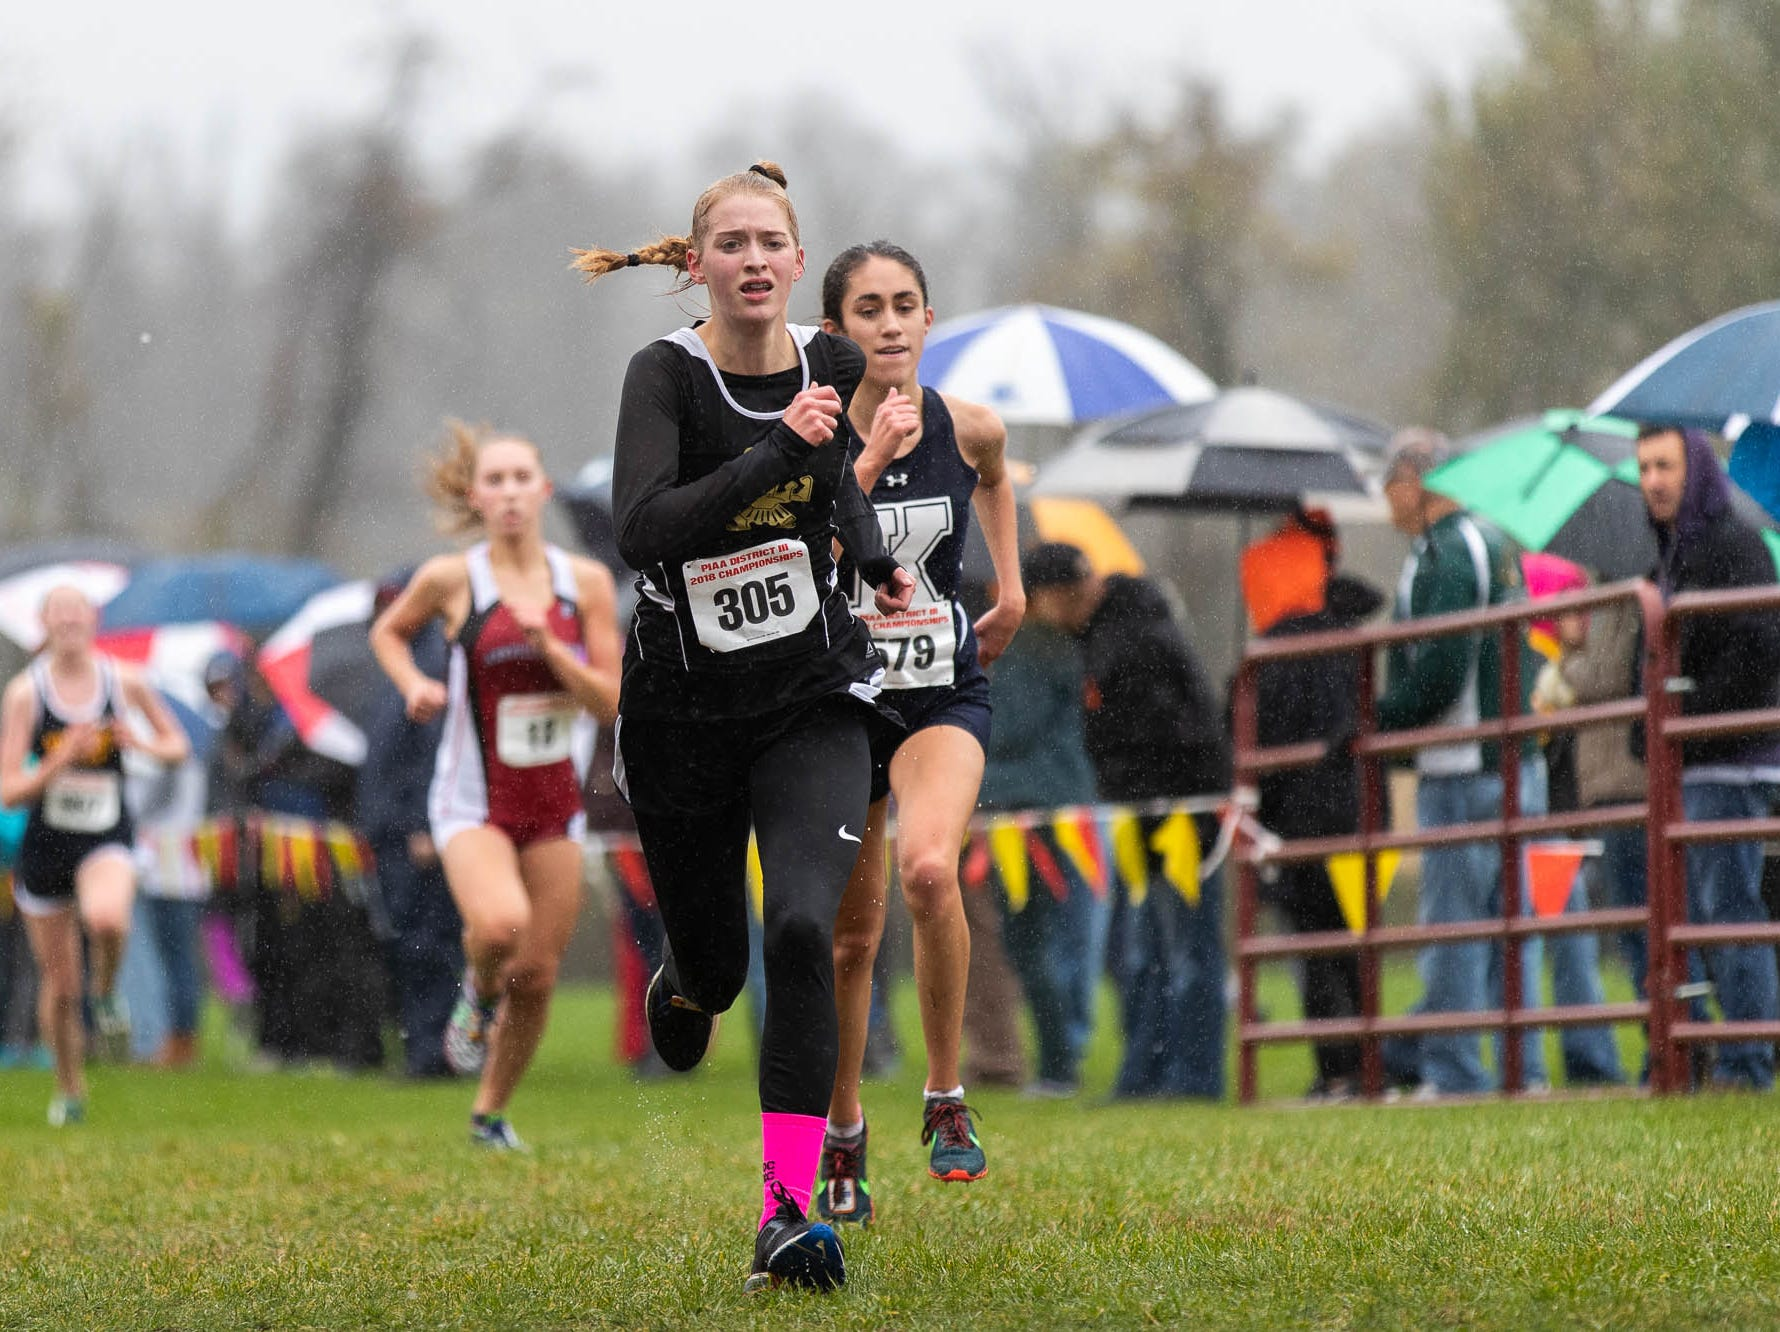 Delone's Julia Obrien (305) places fourth in the Girls A during the PIAA District III Cross Country Championship, Saturday, Oct. 27, 2018, at Big Spring High School in Newville.